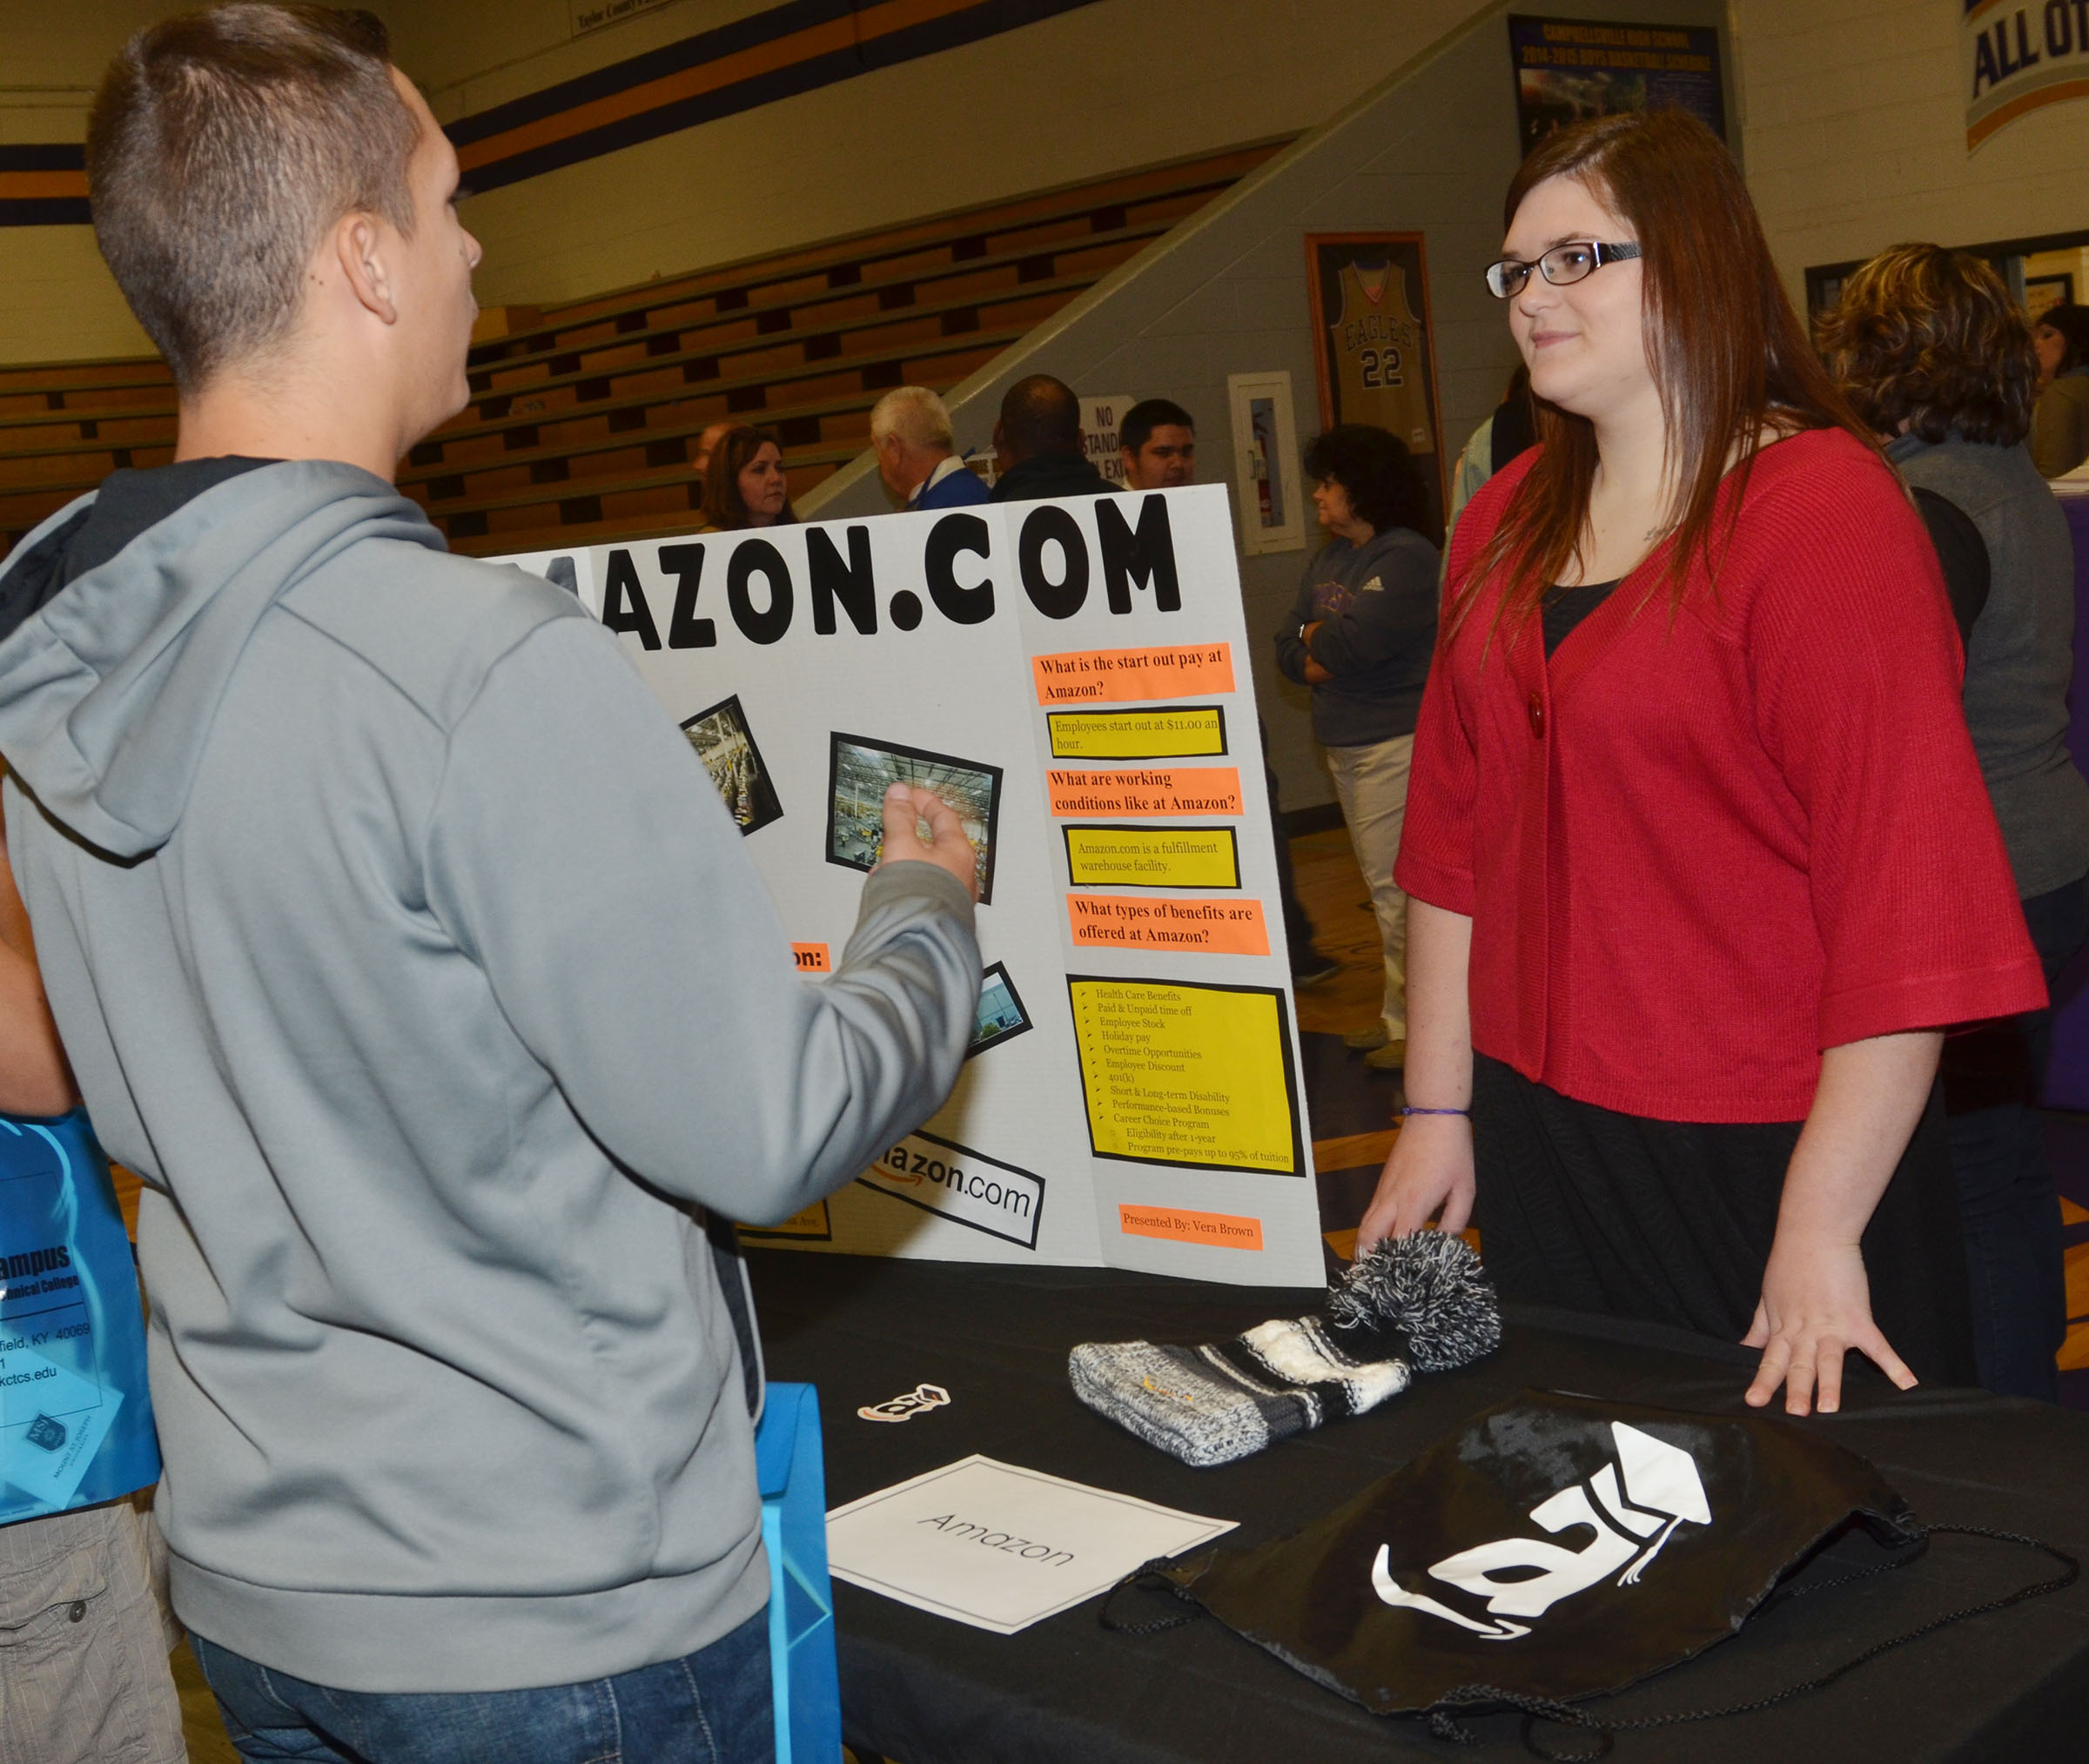 CHS senior Vera Brown talks to students about job opportunities at Amazon.